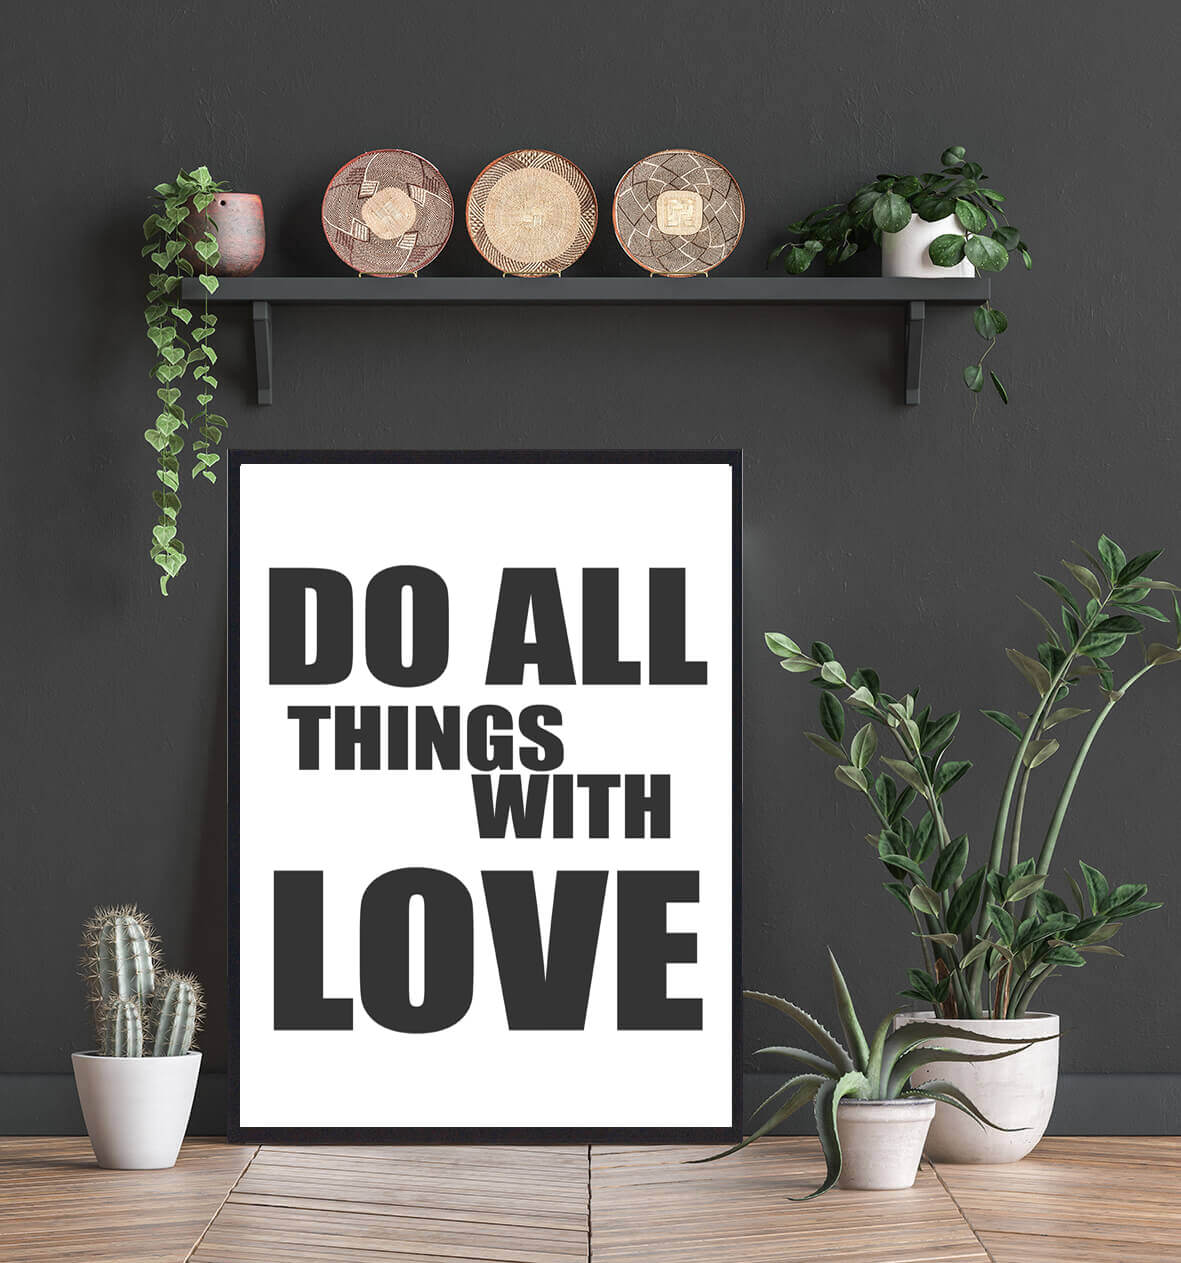 Things-with-love-1